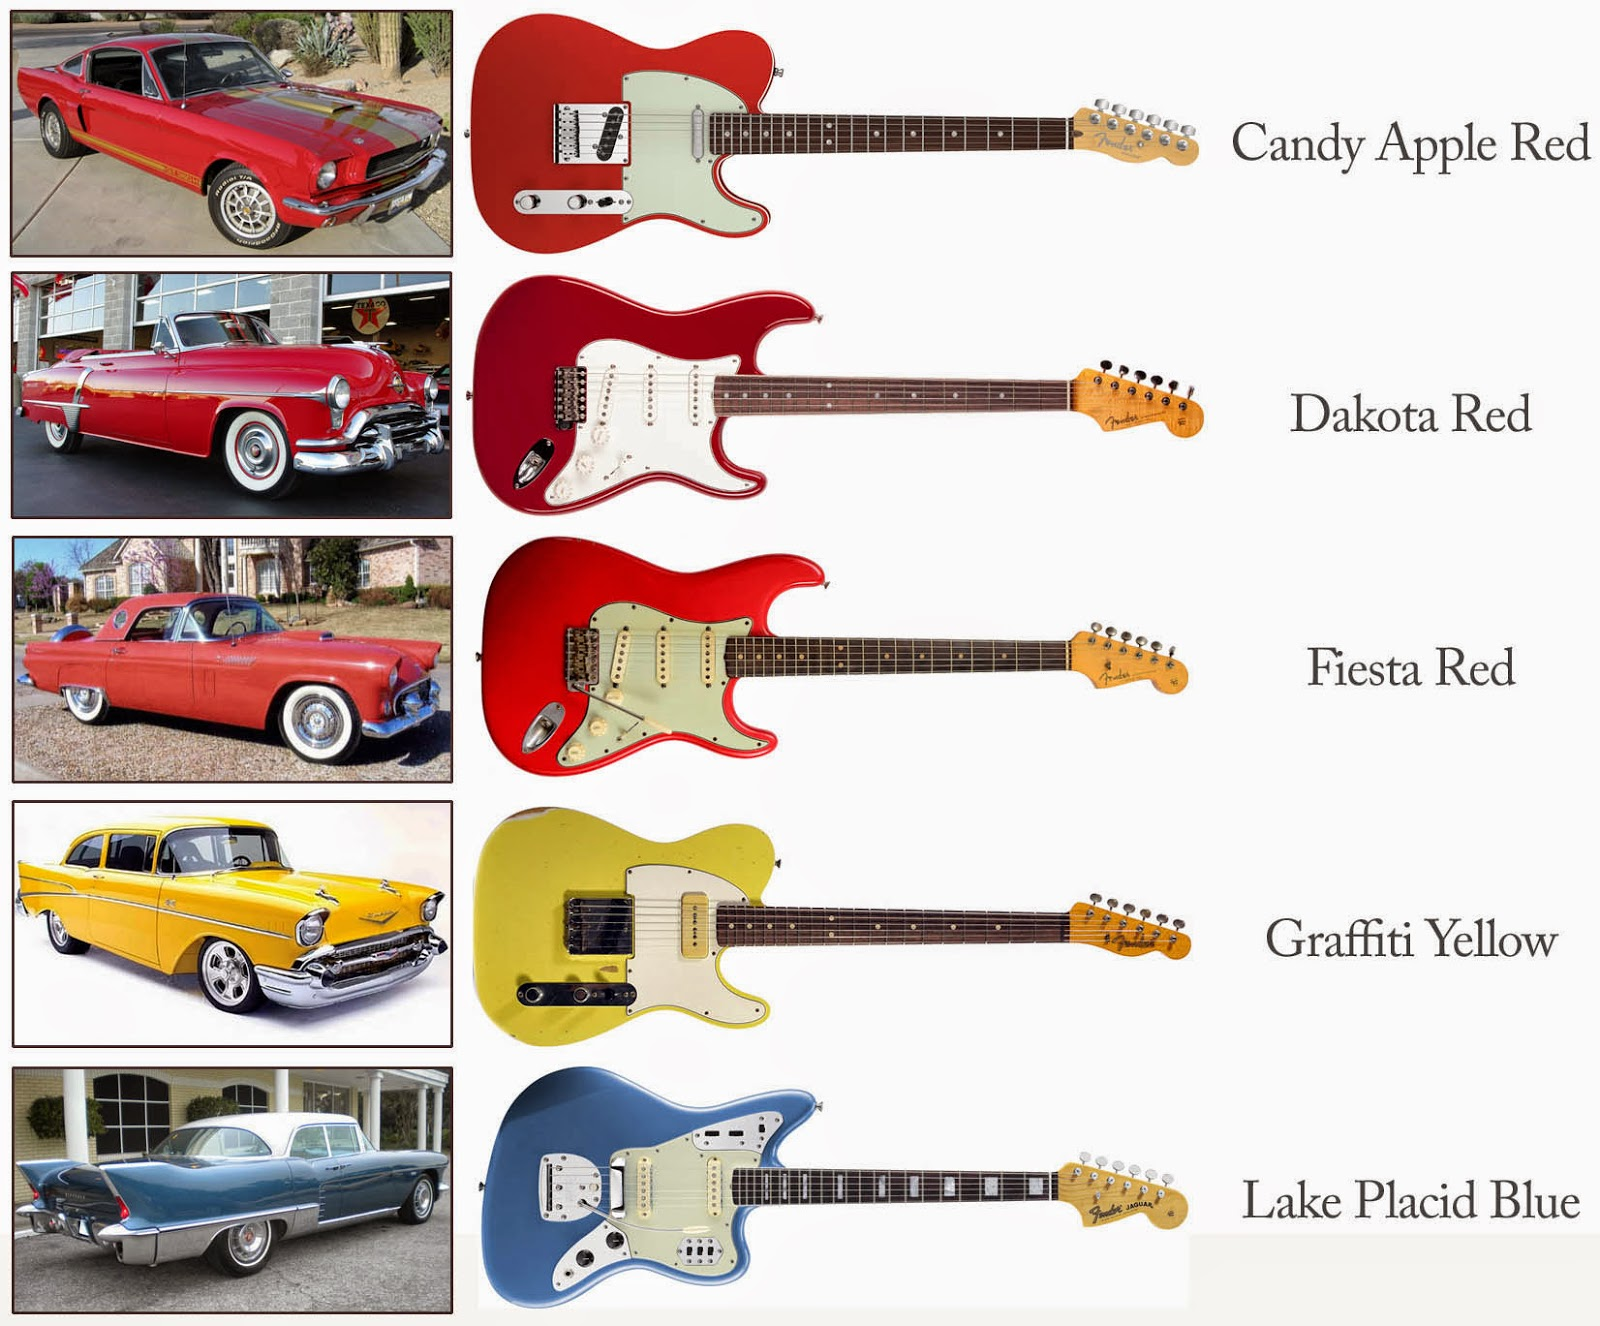 Fender Forums View Topic Color Chart And Automobiles 1960 Plymouth Chips Image